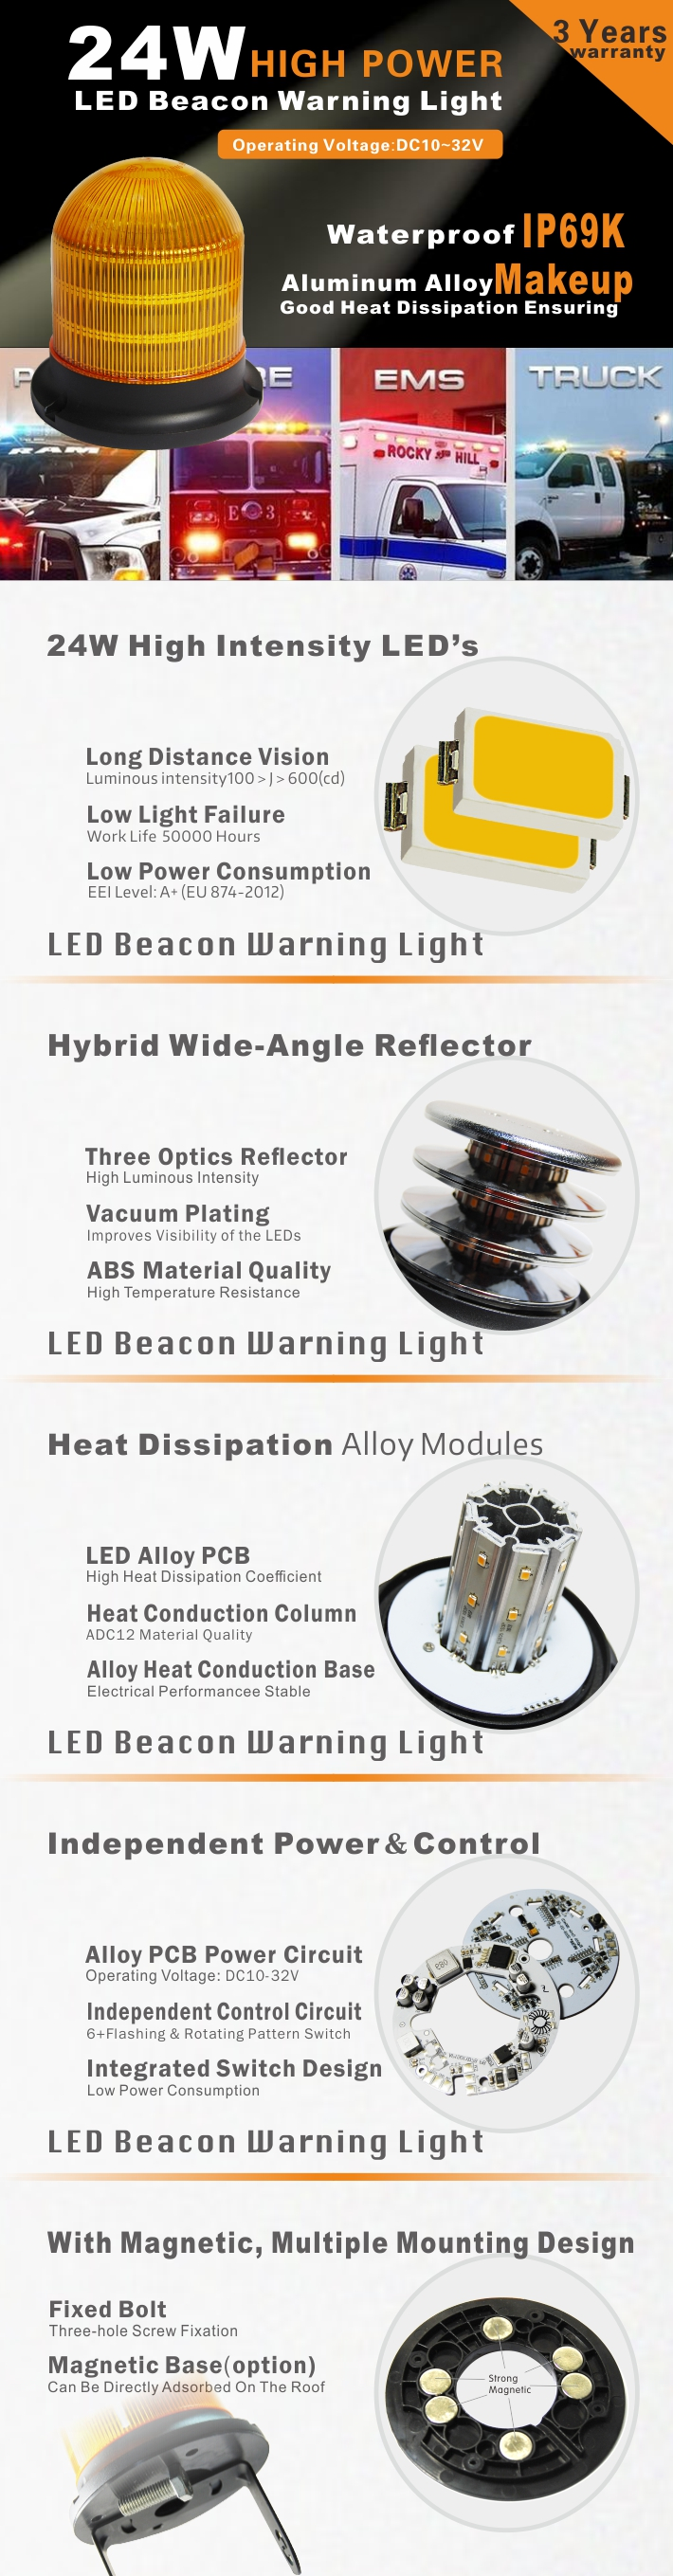 High Lens Amber LED Beacon Strobe Rotating Warning Caution Light with Cigarette Lighter for Building, Construction, Airport